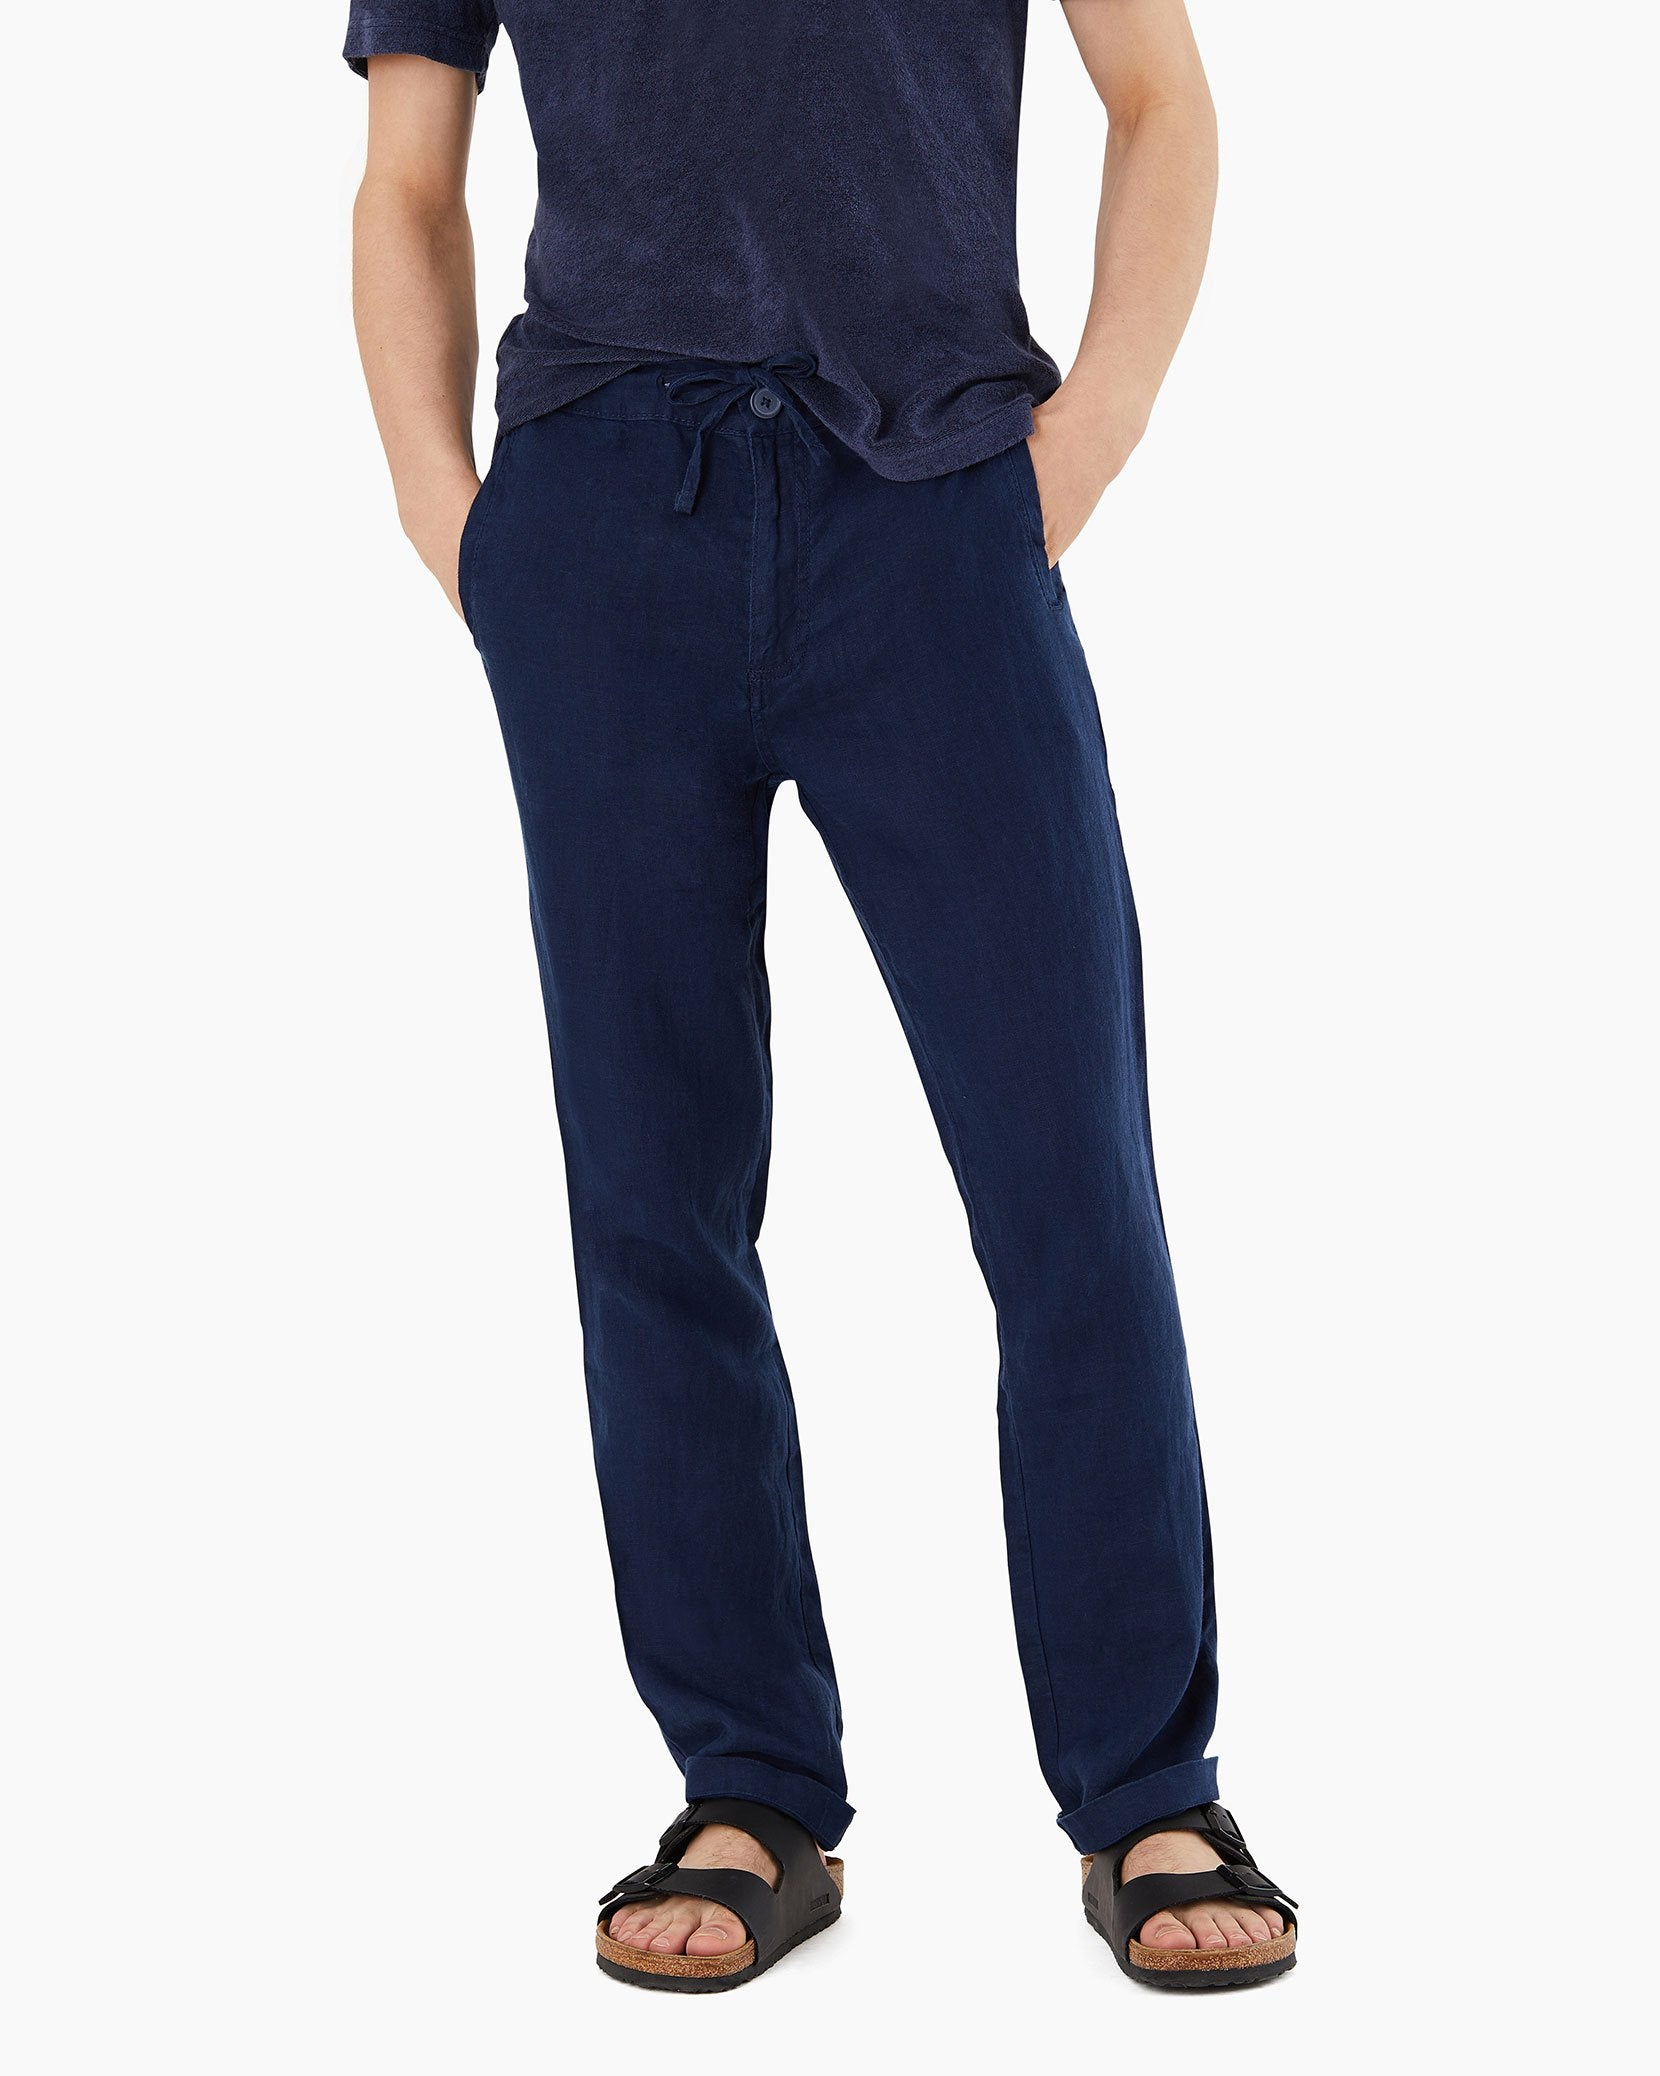 Collin Linen Pant in Deep Navy - 12 - Onia